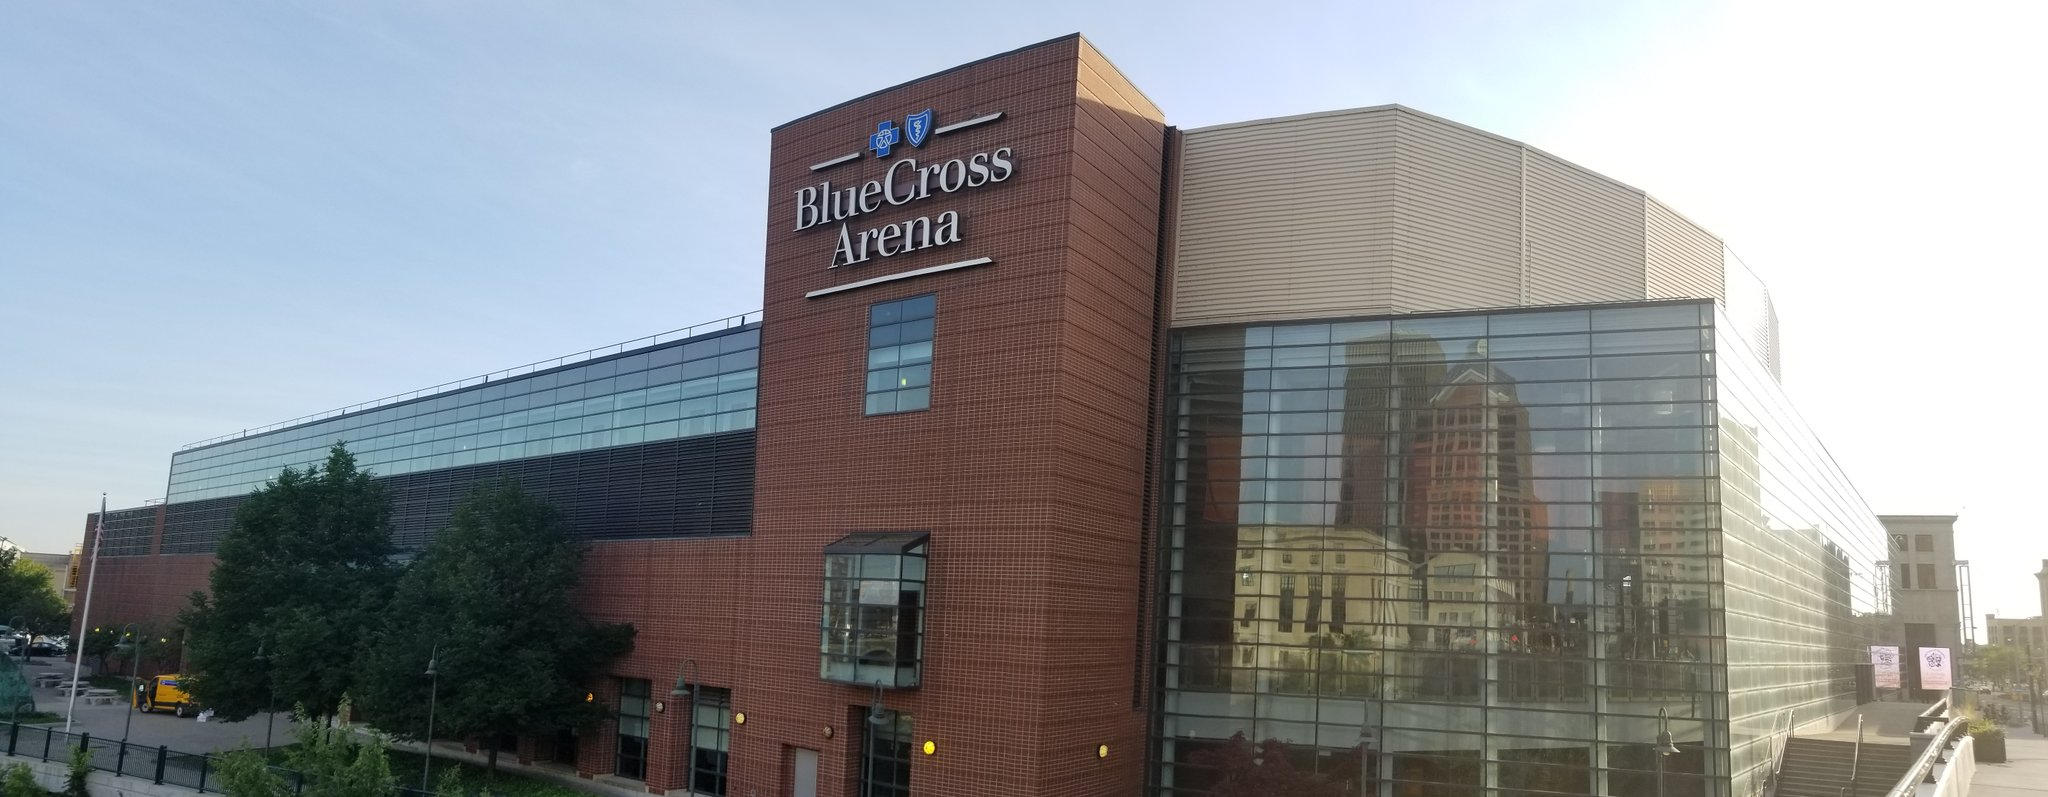 City Council Approved PSE Management and Blue Cross Arena Upgrades